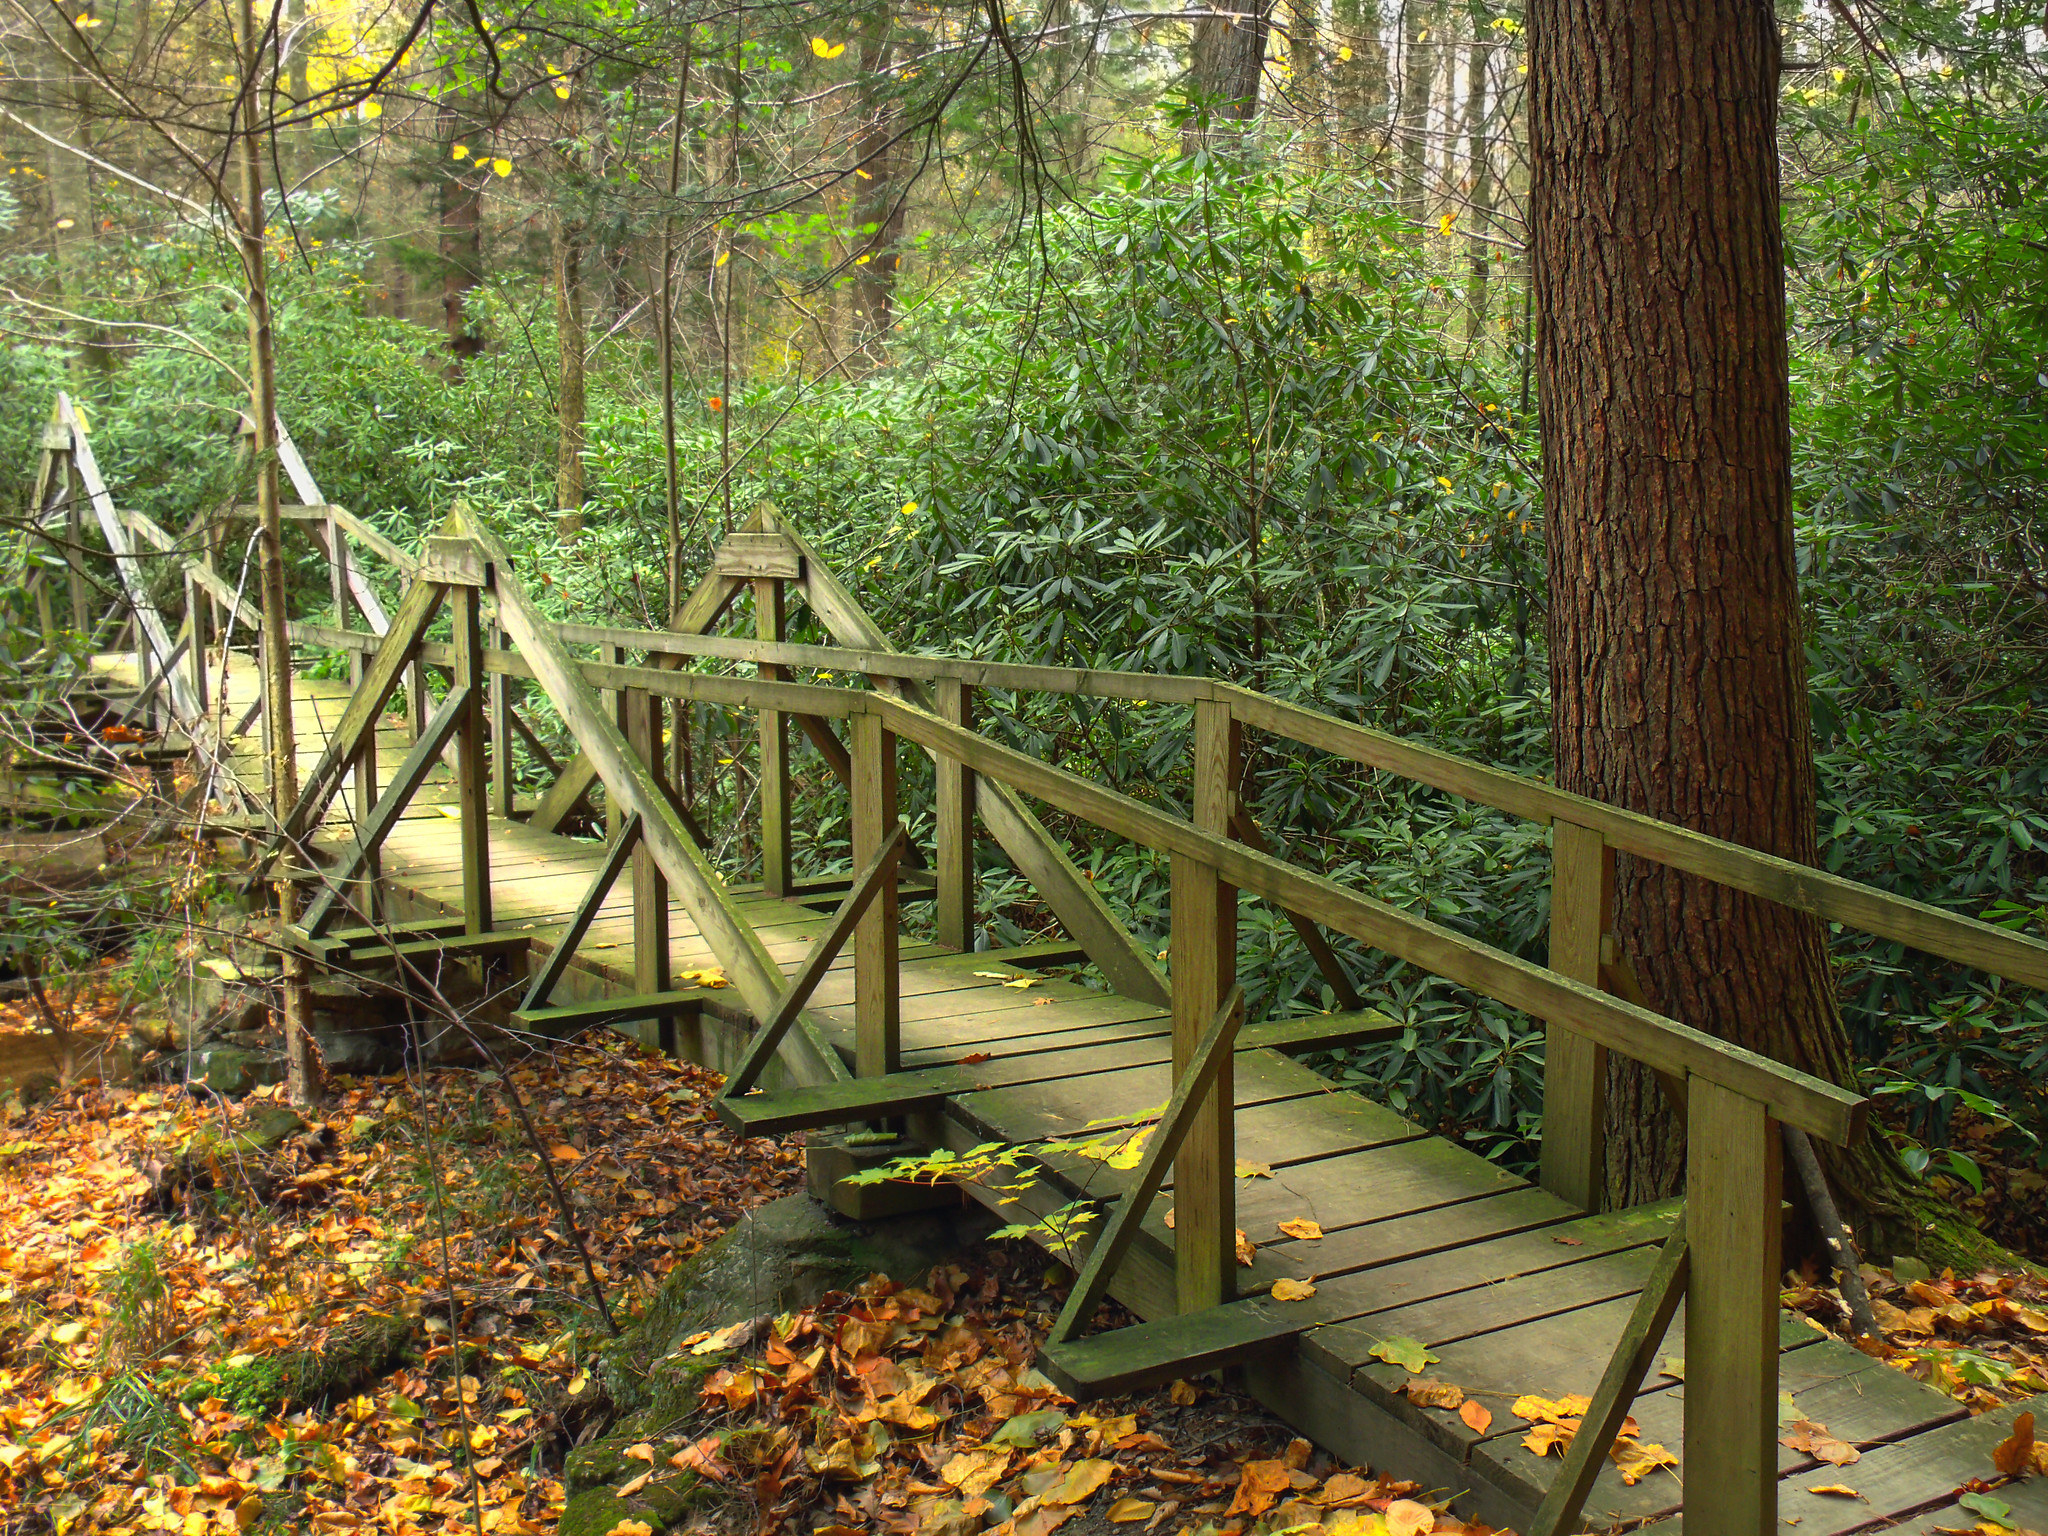 A wooden footbridge surrounded by trees and autumn leaves that have fallen on the ground